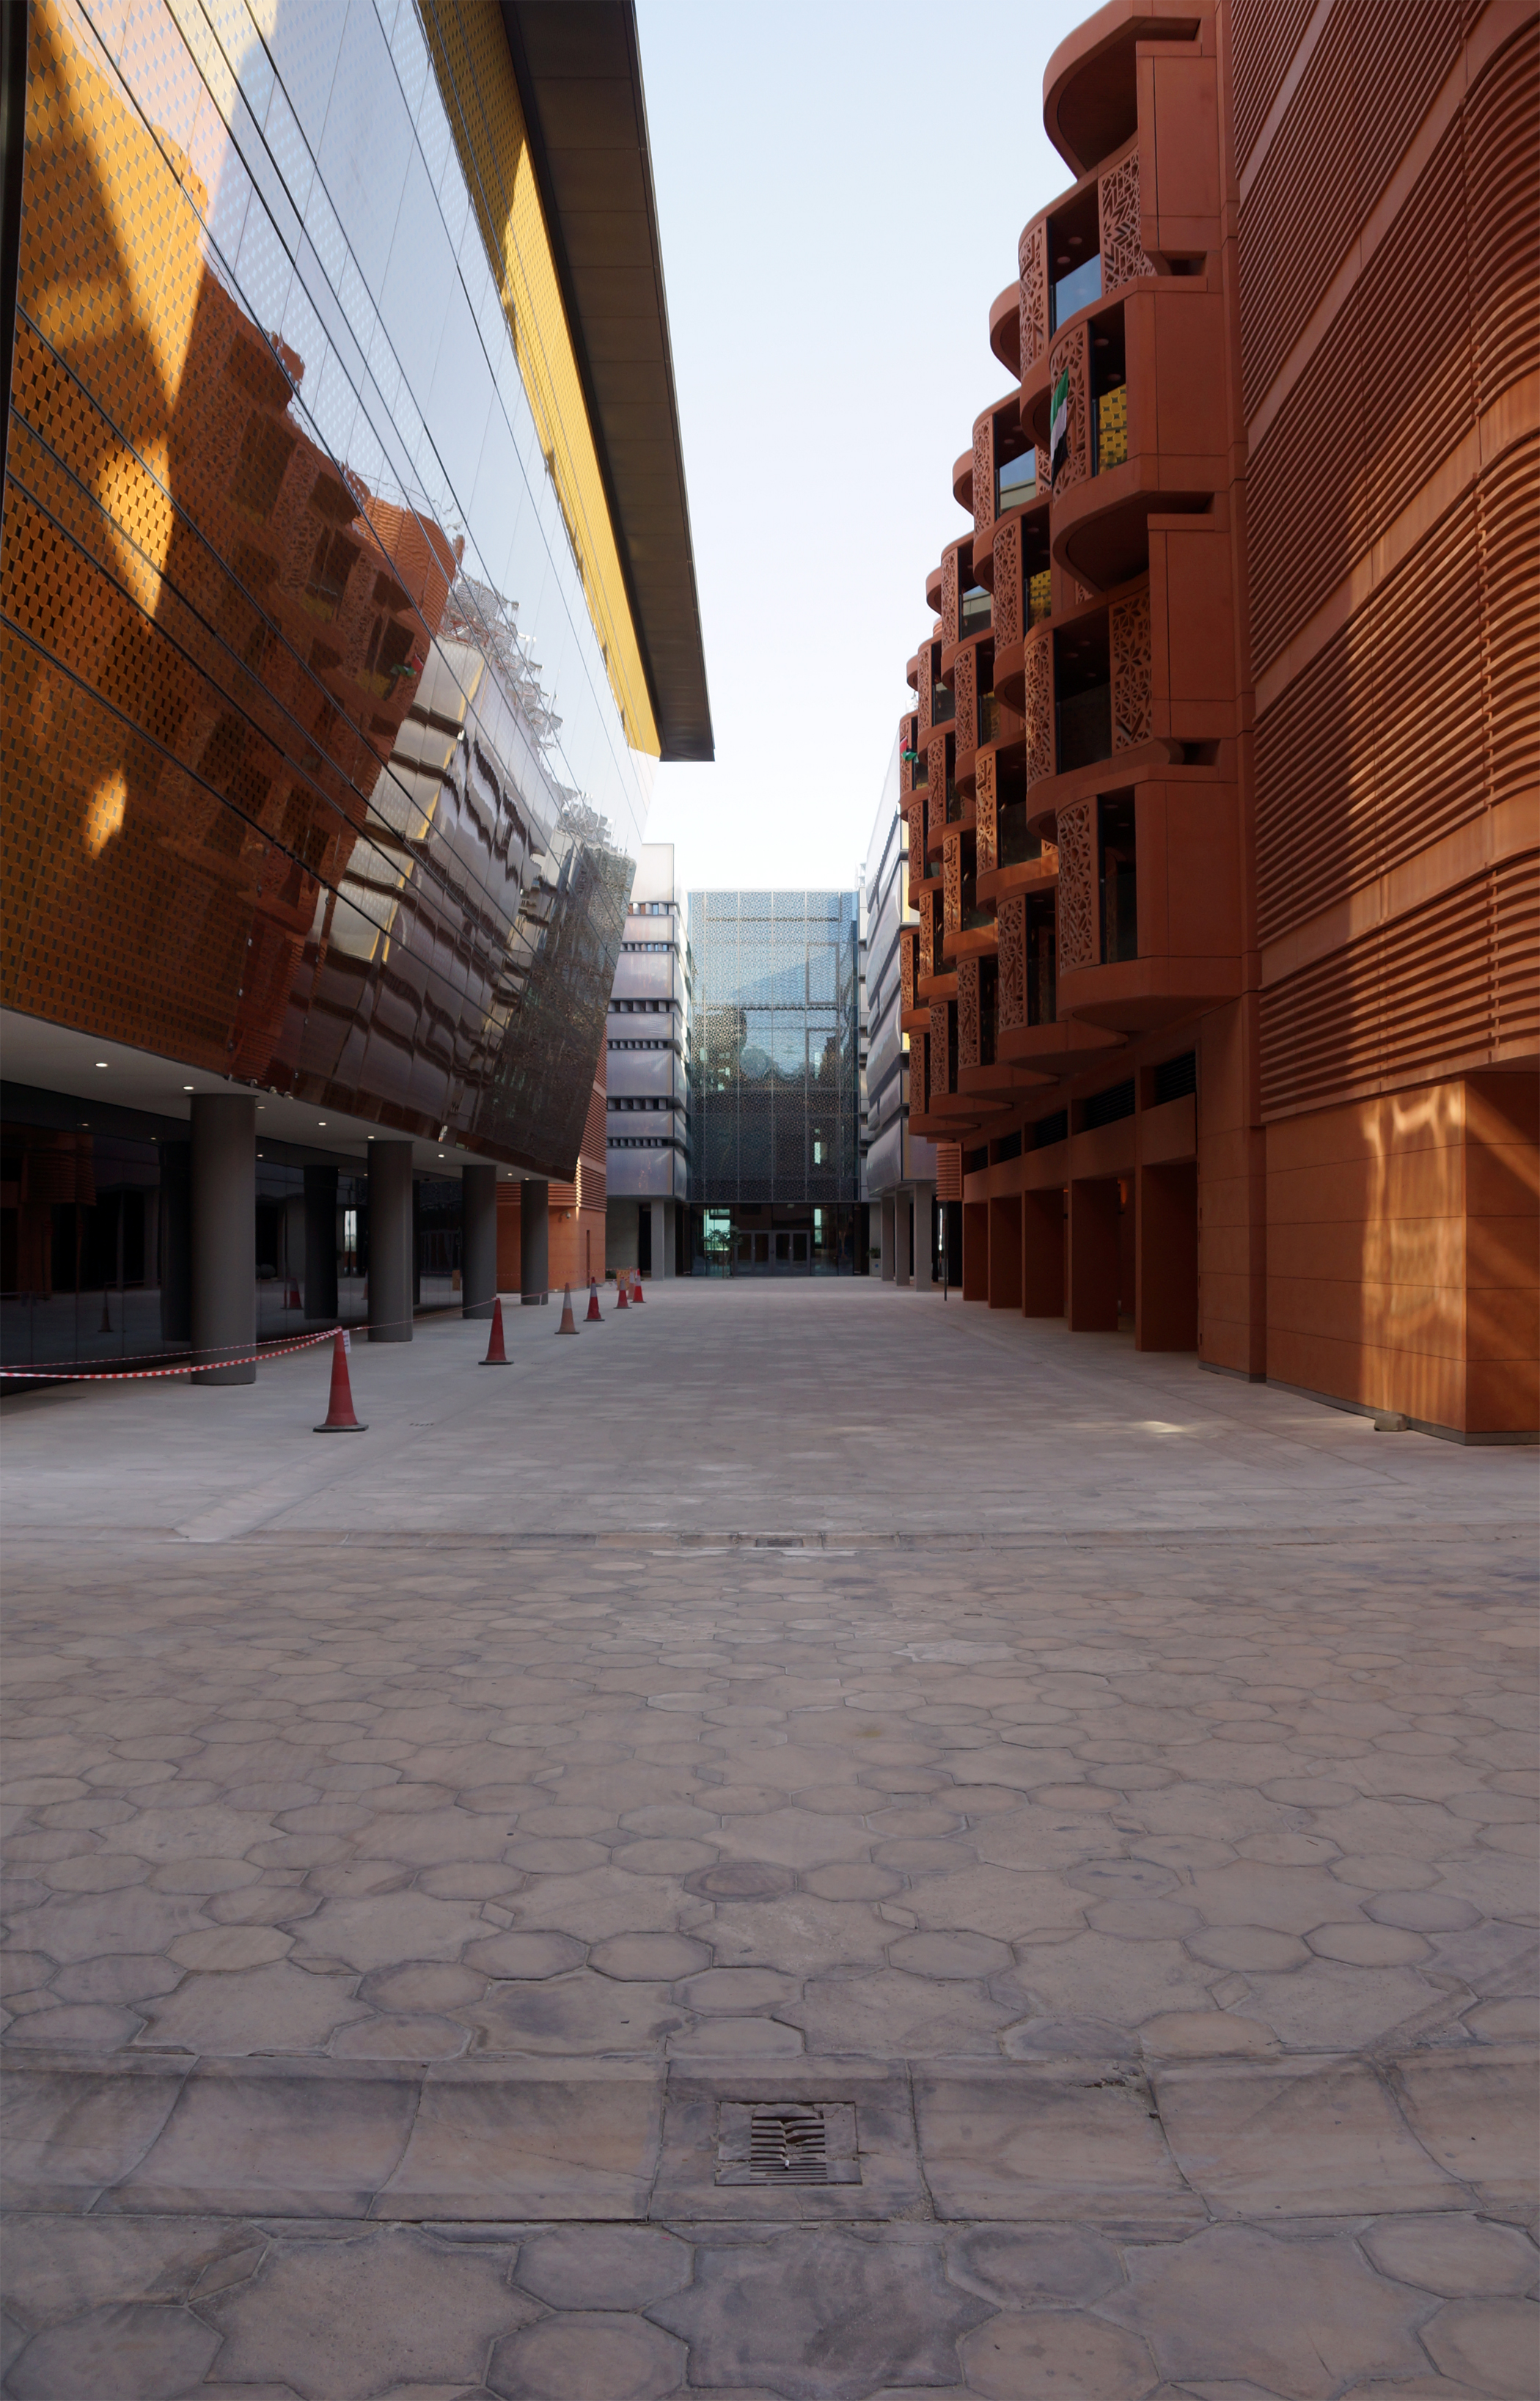 masdar city Learn more about life and work at masdar browse our open positions and apply to them yourself or share vacancies with suitable contacts.